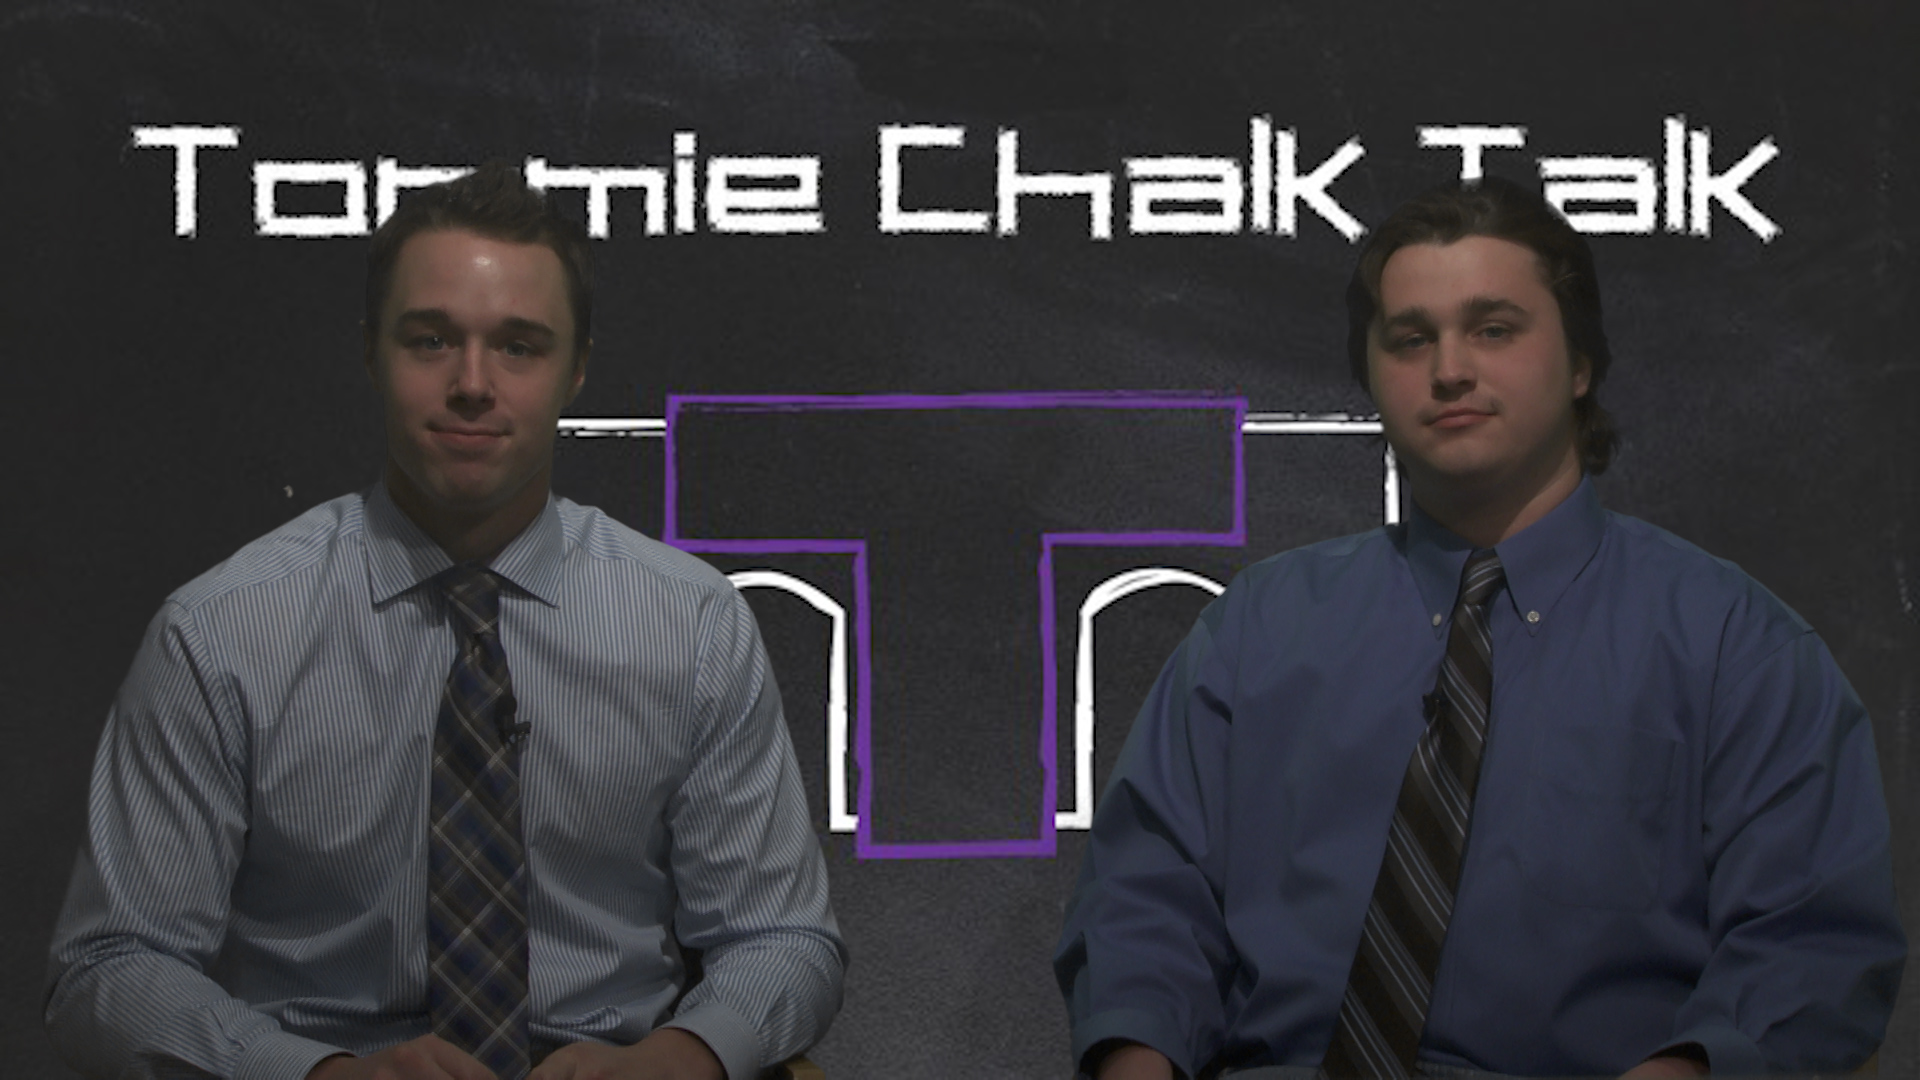 Tommie Chalk Talk - Nov. 26, 2015